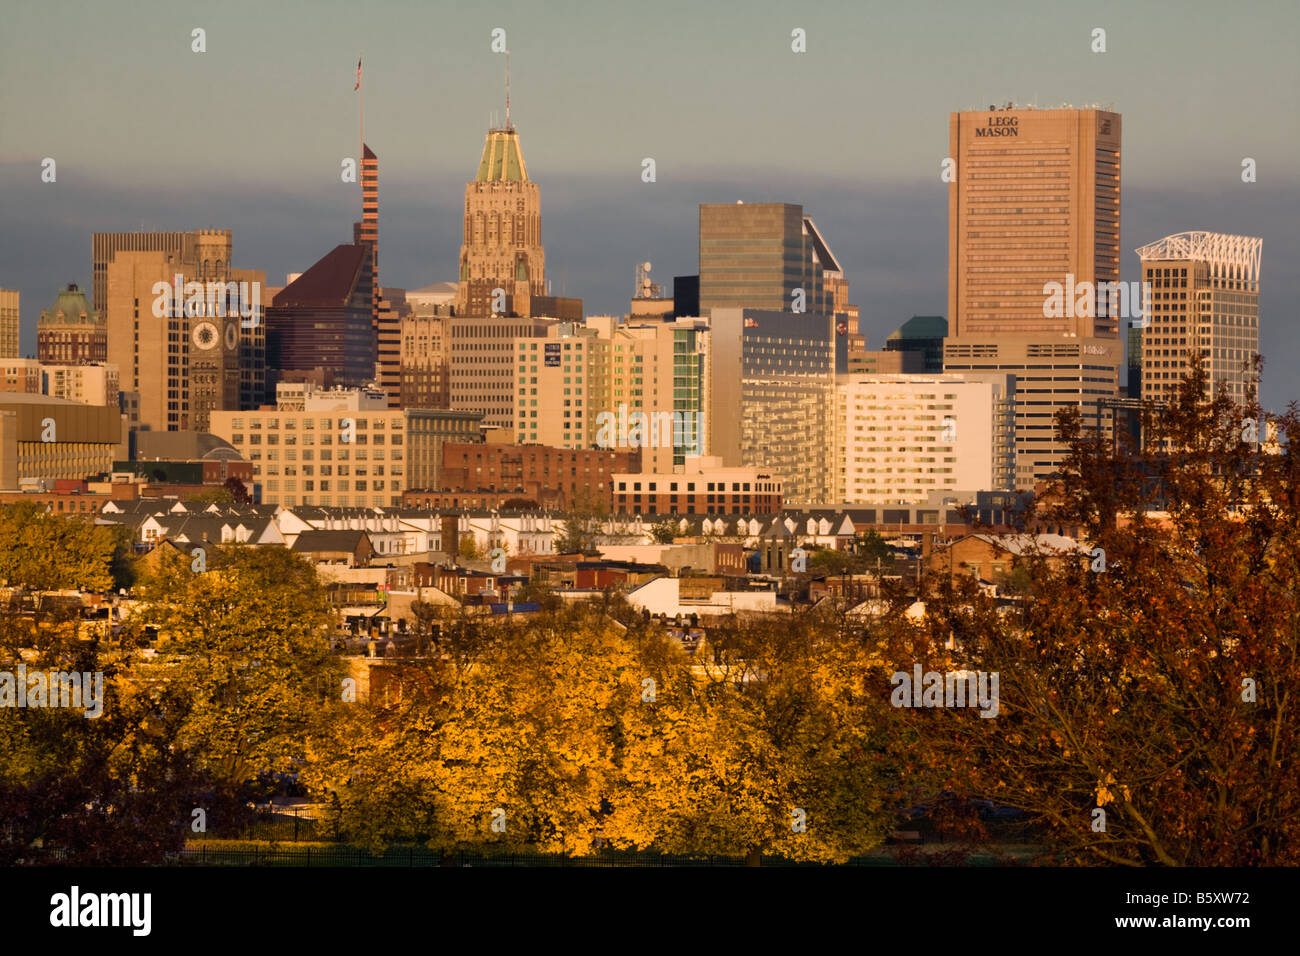 Autumnal skyline of Baltimore Maryland - Stock Image